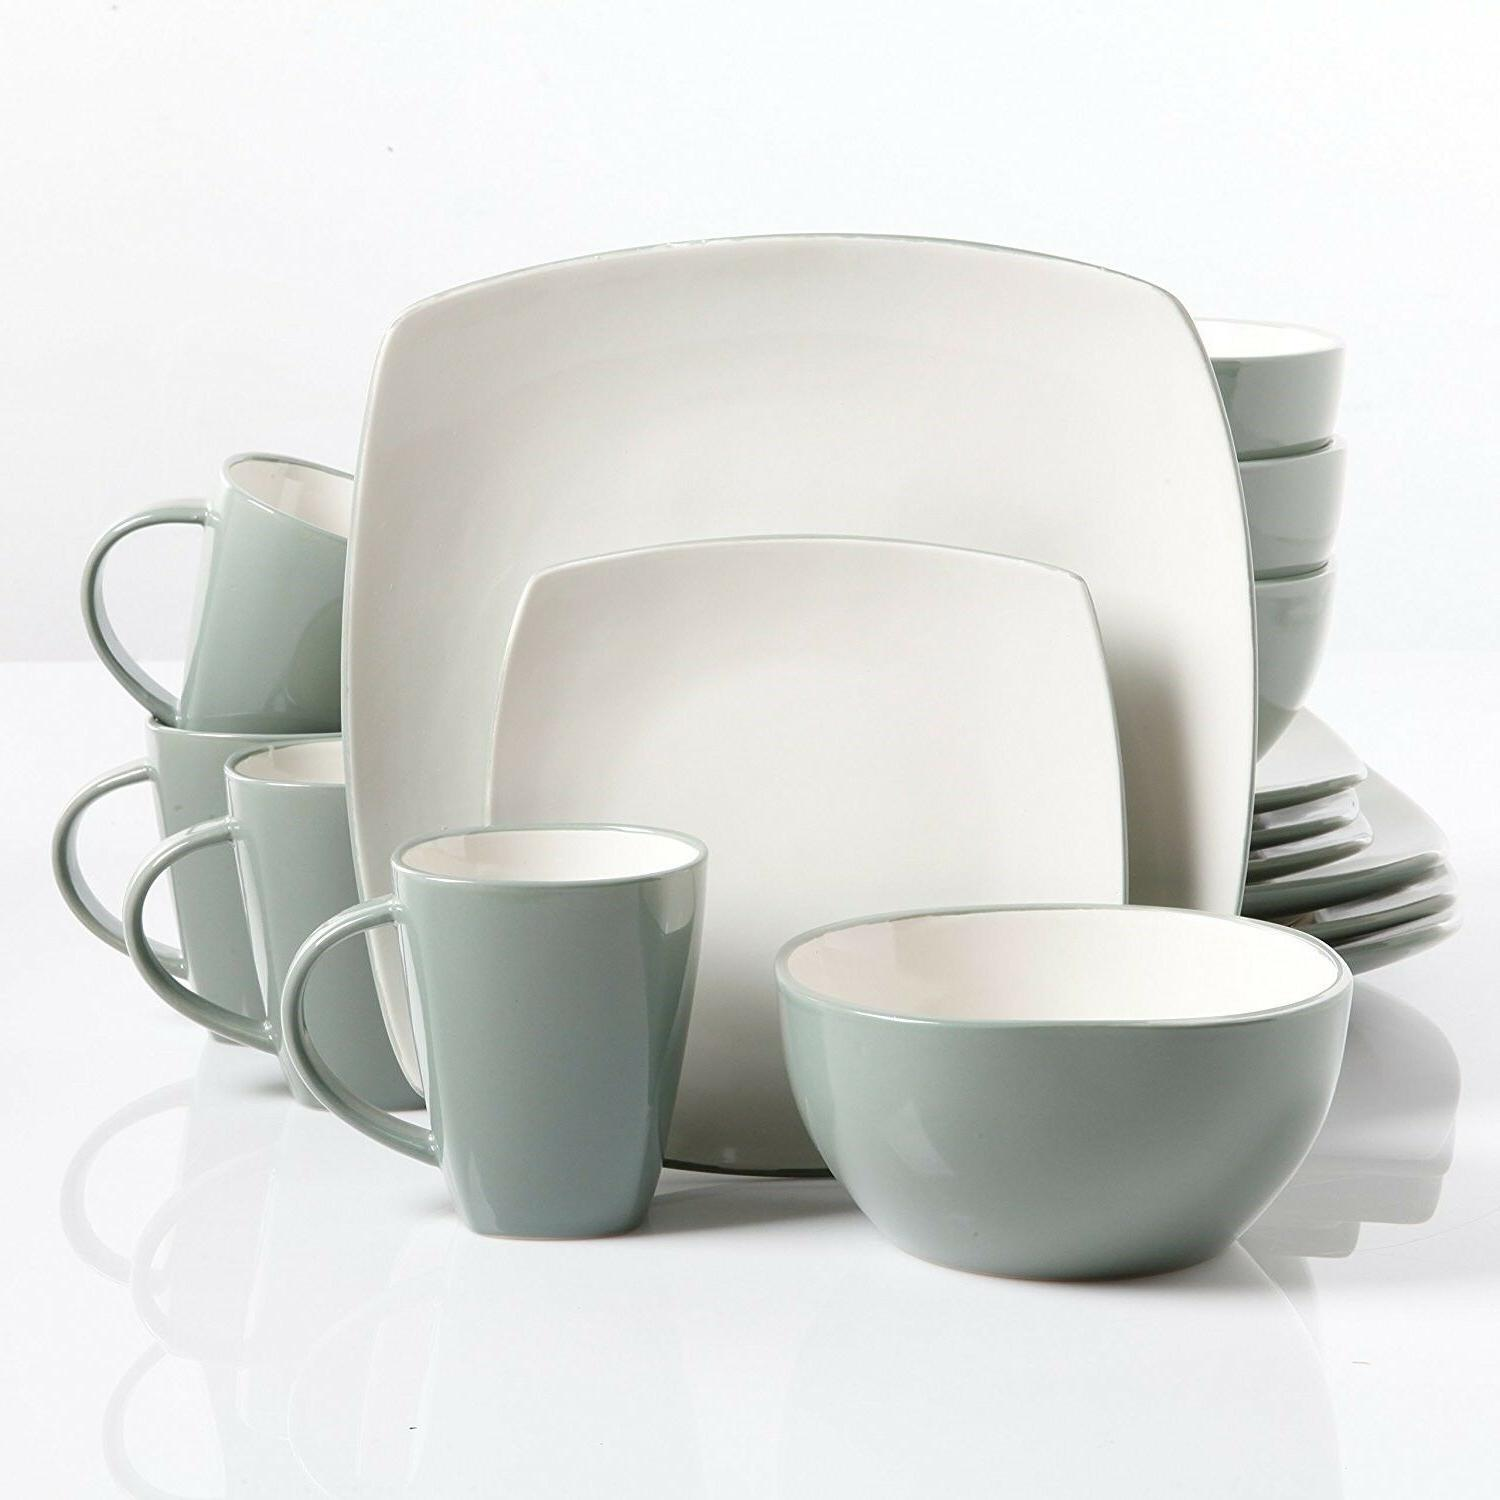 Soho Lounge Reactive Glaze Dinnerware Glass